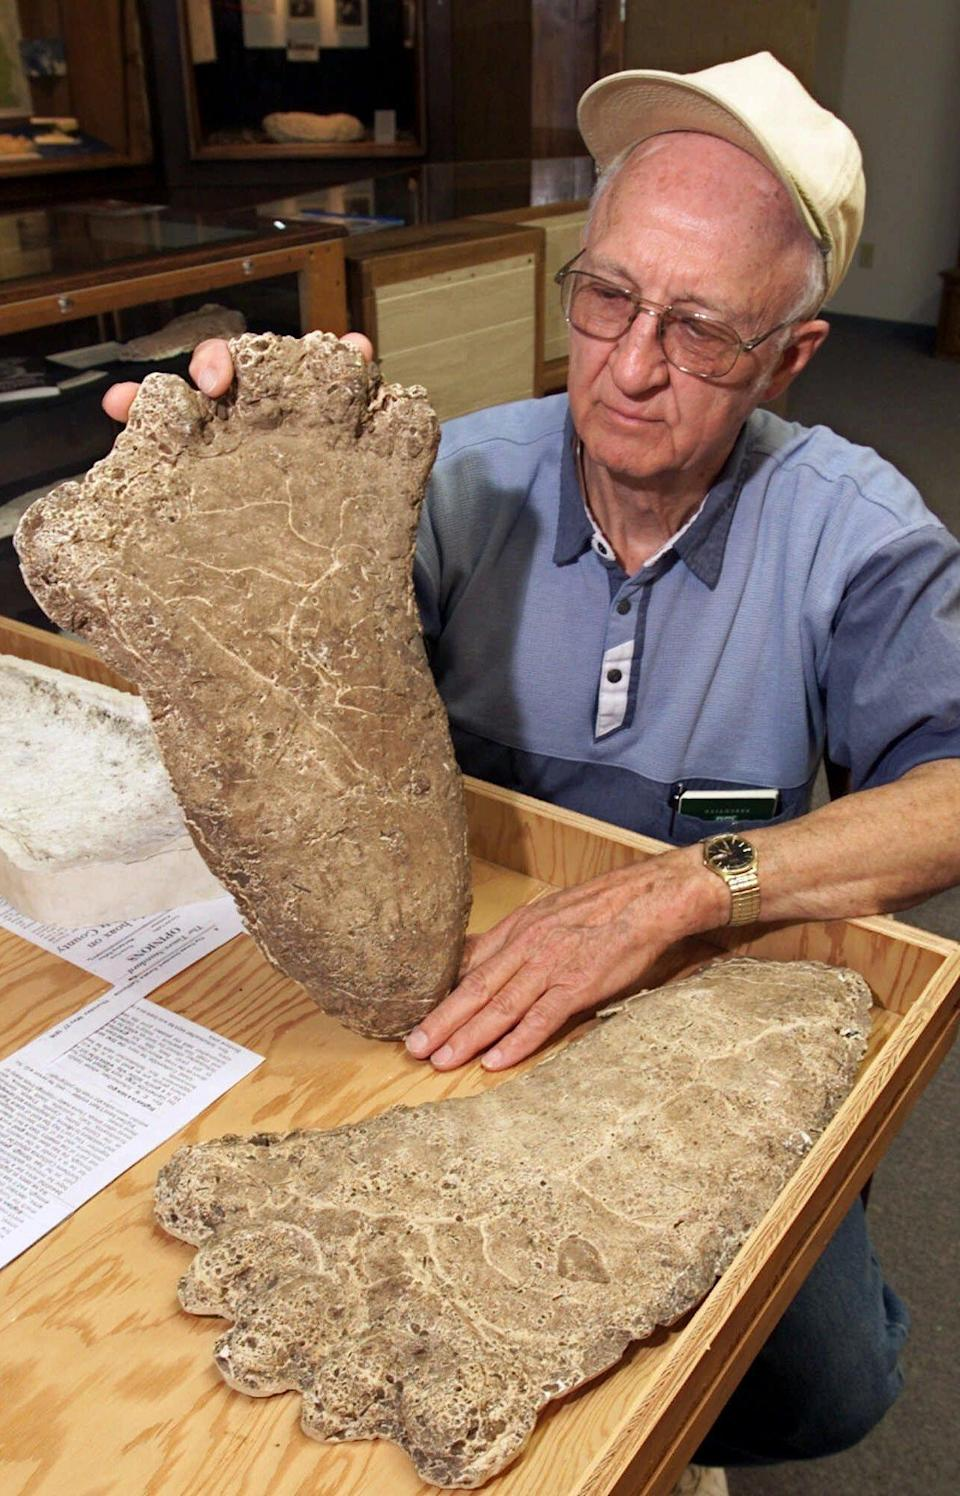 """FILE - In this Monday, June 5, 2000 file photo Al Hodgson, a volunteer guide at the Willow Creek-China Flat Musuem, holds up a plaster cast of a Bigfoot imprint displayed at the museum's new """"Bigfoot Wing"""" in Willow Creek, Calif. European researchers are planning to use new techniques to analyze DNA that could help crack the mystery of whether Bigfoot exists. In a project announced this week, May 2012, Oxford University and Lausanne Museum of Zoology scientists appealed to museums, scientists and yeti aficionados to share samples thought to be from the mythical ape-like creature. Researchers plan to focus on hair samples to determine the species it originated from. New genetic tests will be done on just a few strands, and completed within weeks. (AP Photo/Rich Pedroncelli, file)"""